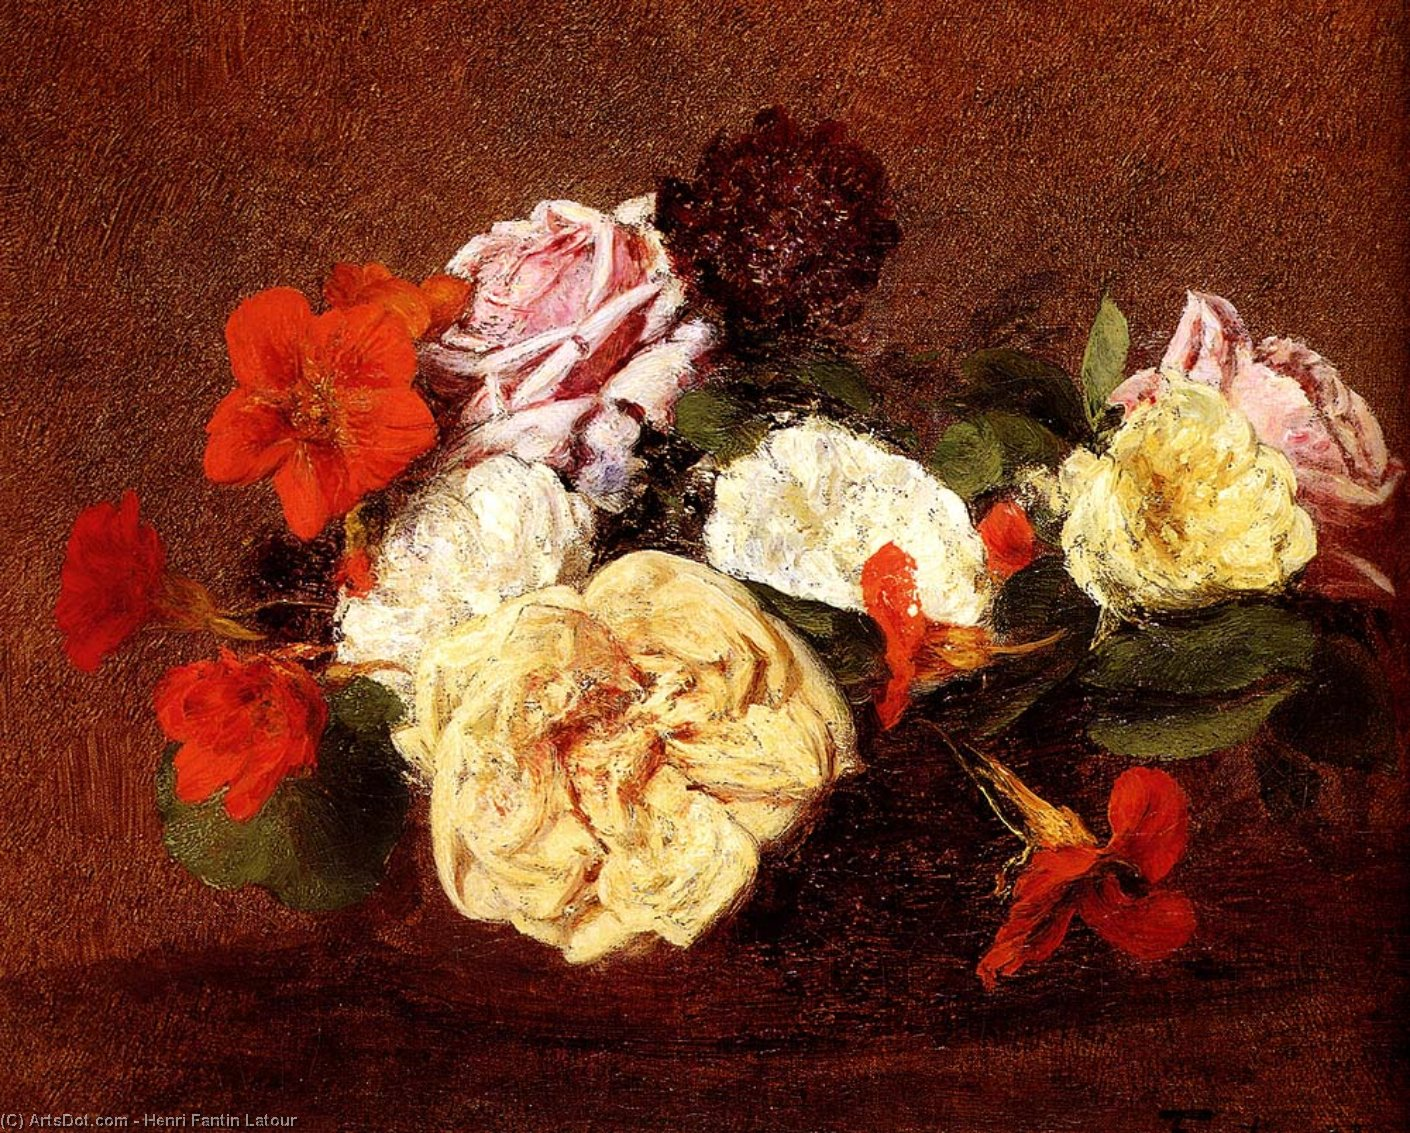 Bouquet Of Roses And Nasturtiums, Oil by Henri Fantin Latour (1836-1904, France)